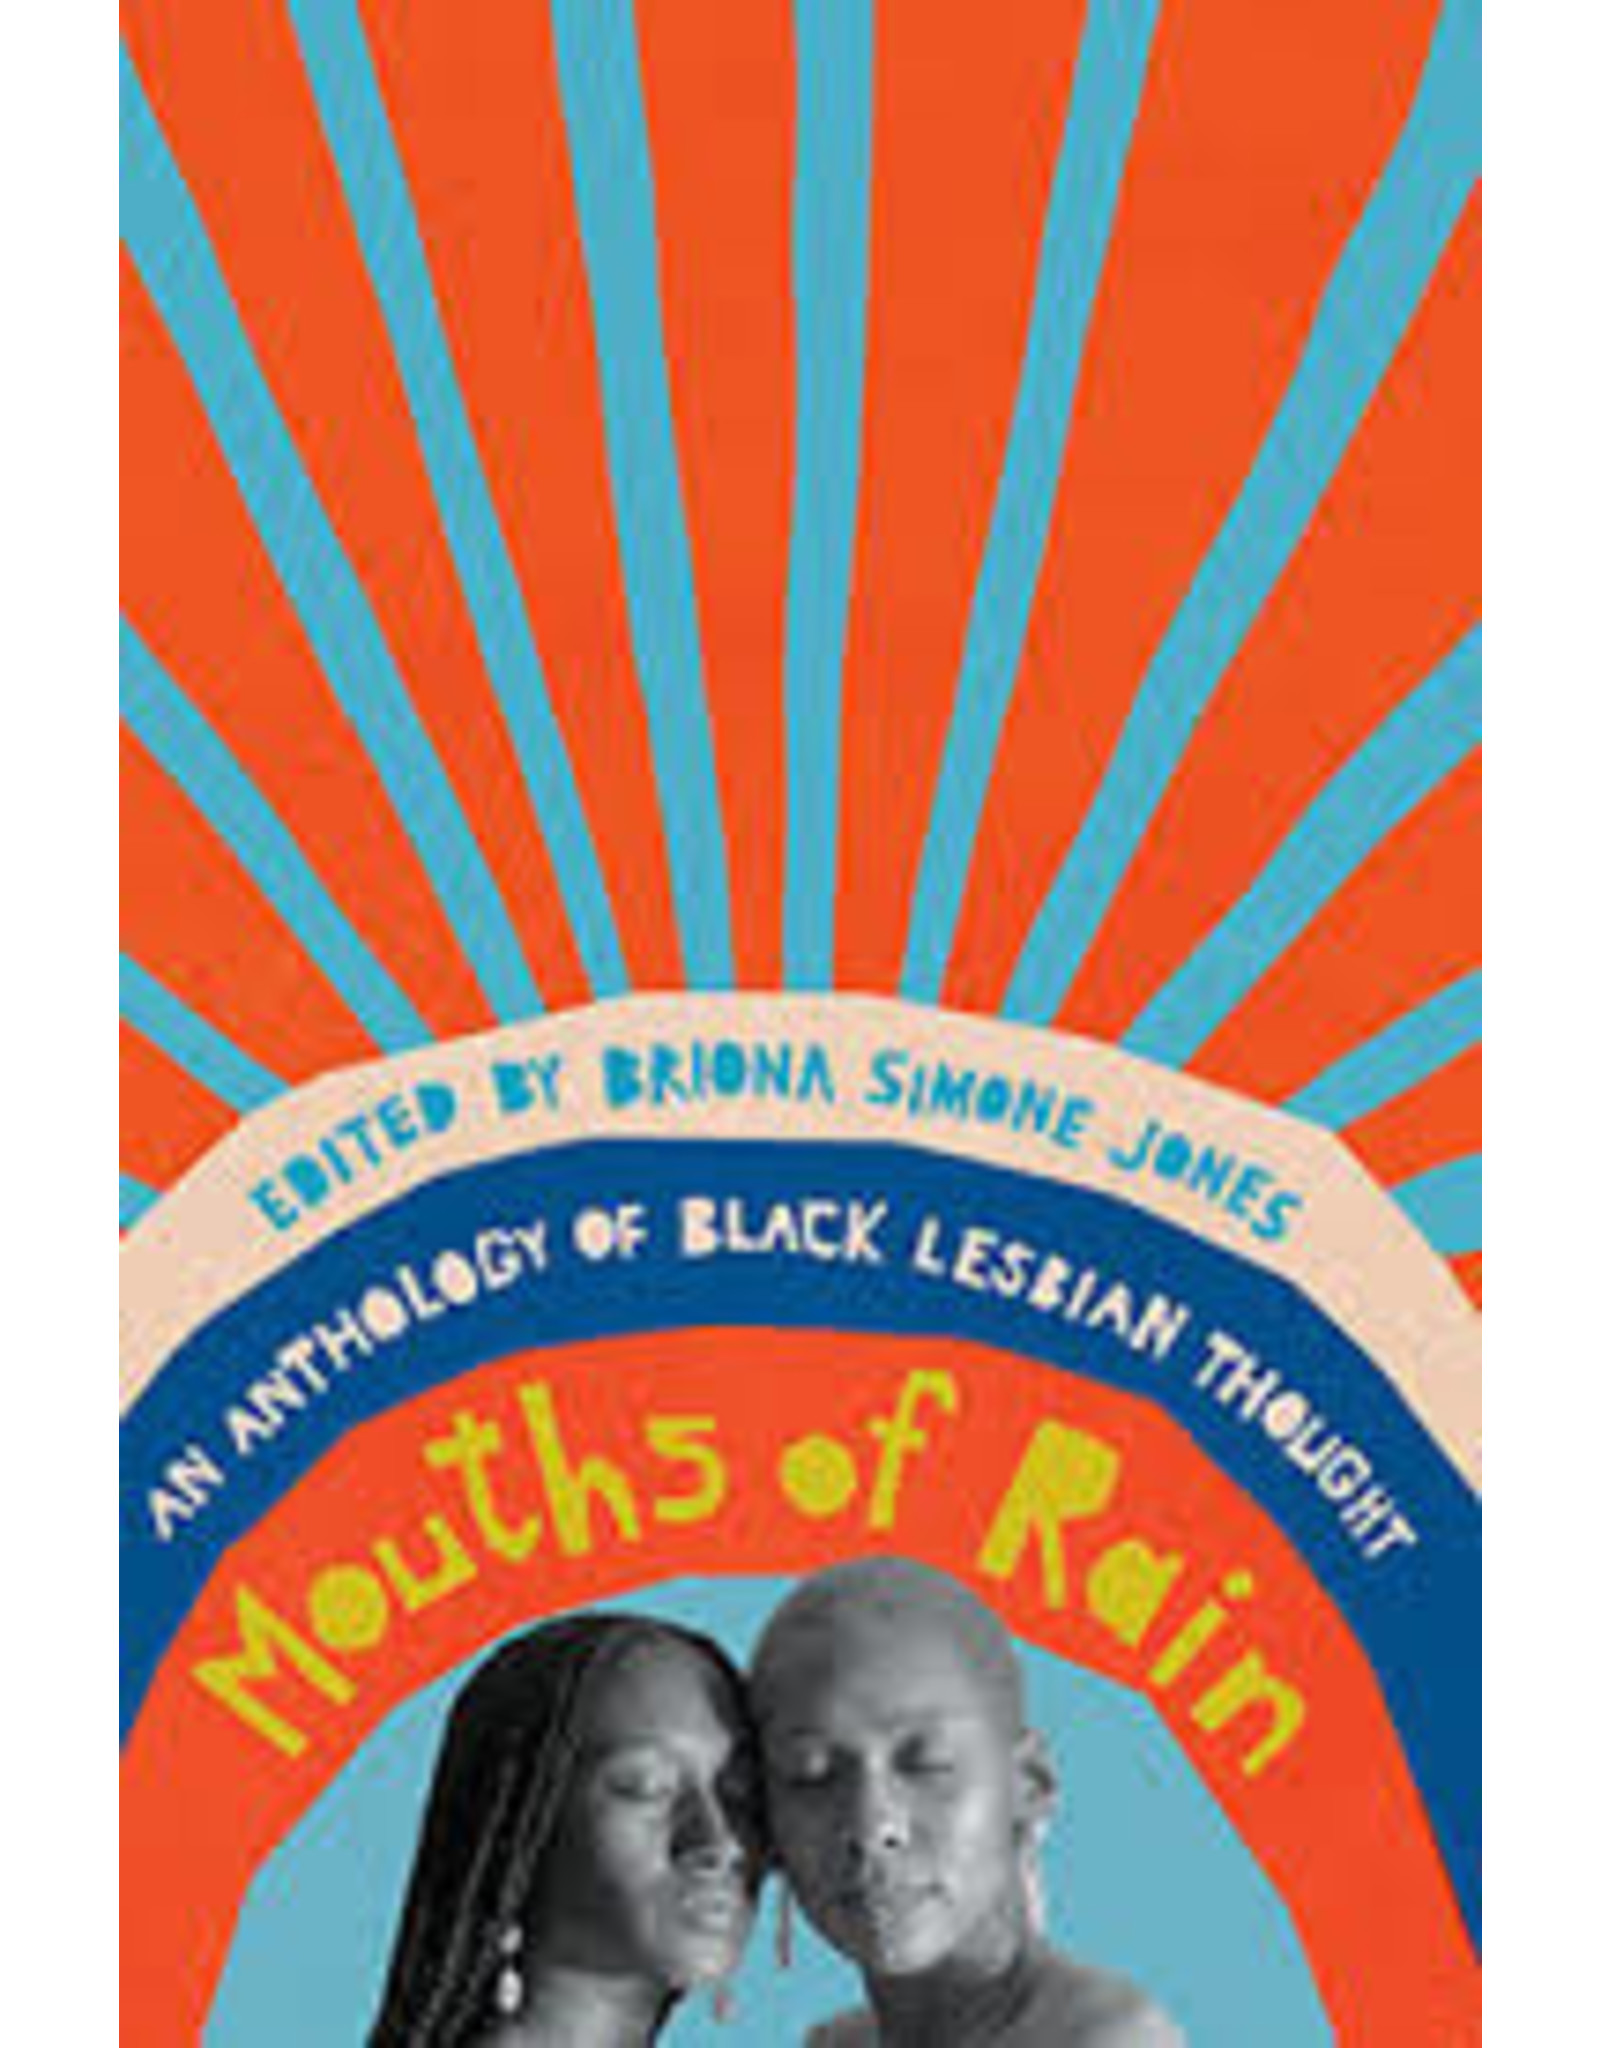 Books Mouths of Rain : An Anthology of Black Lesbian Thought edited by Briona Simone Jones